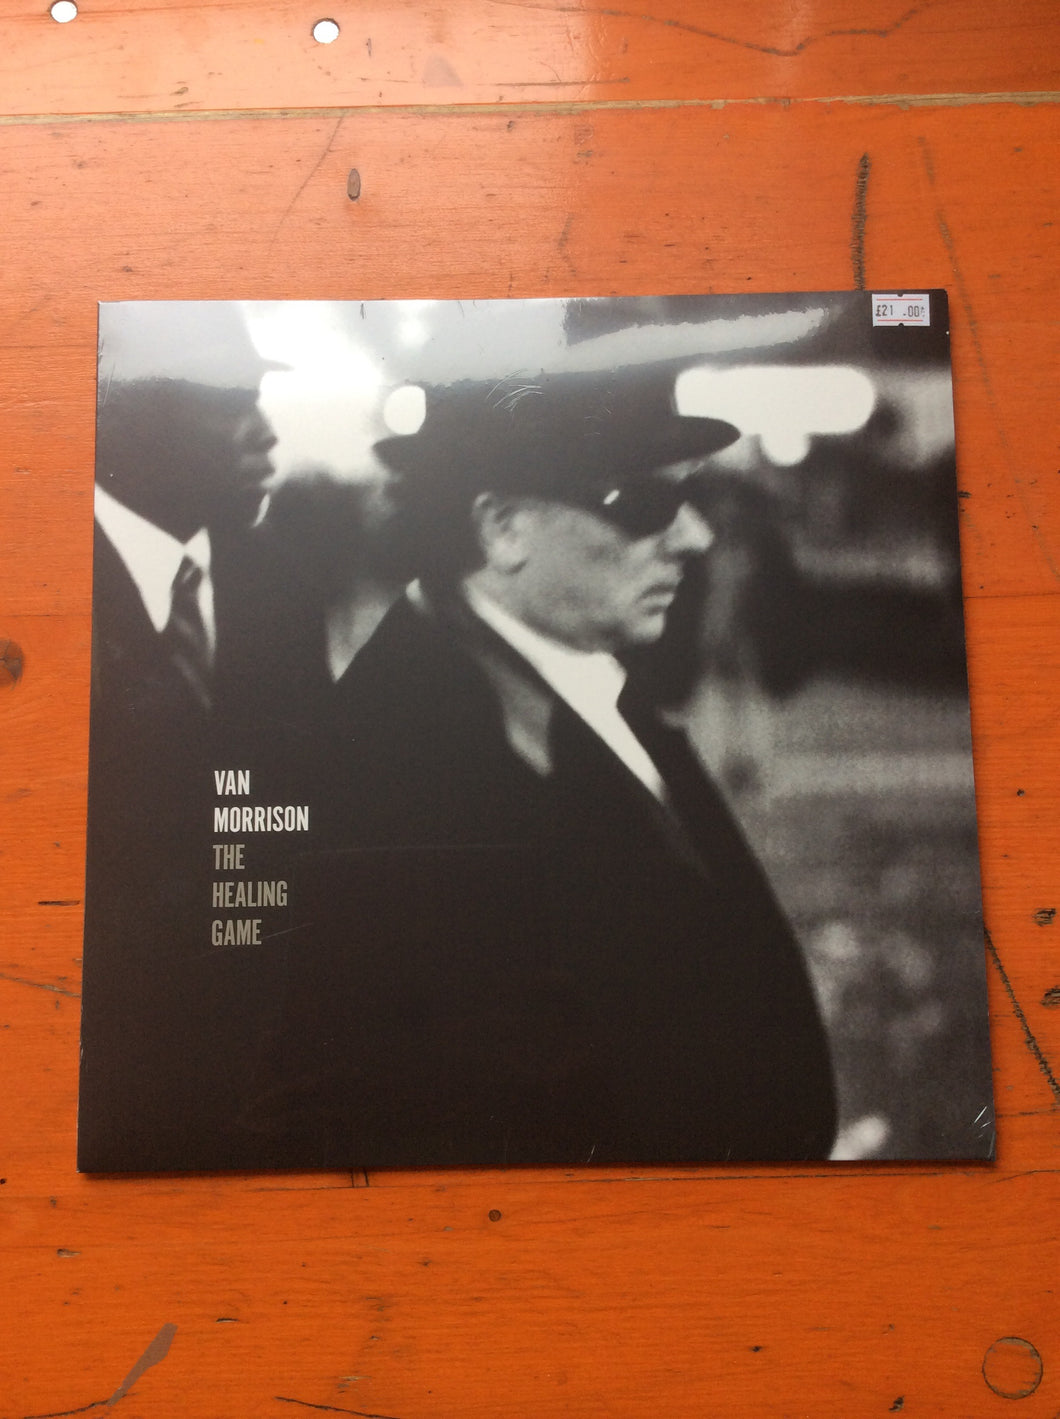 Van Morrison - The Healing Game (deluxe)